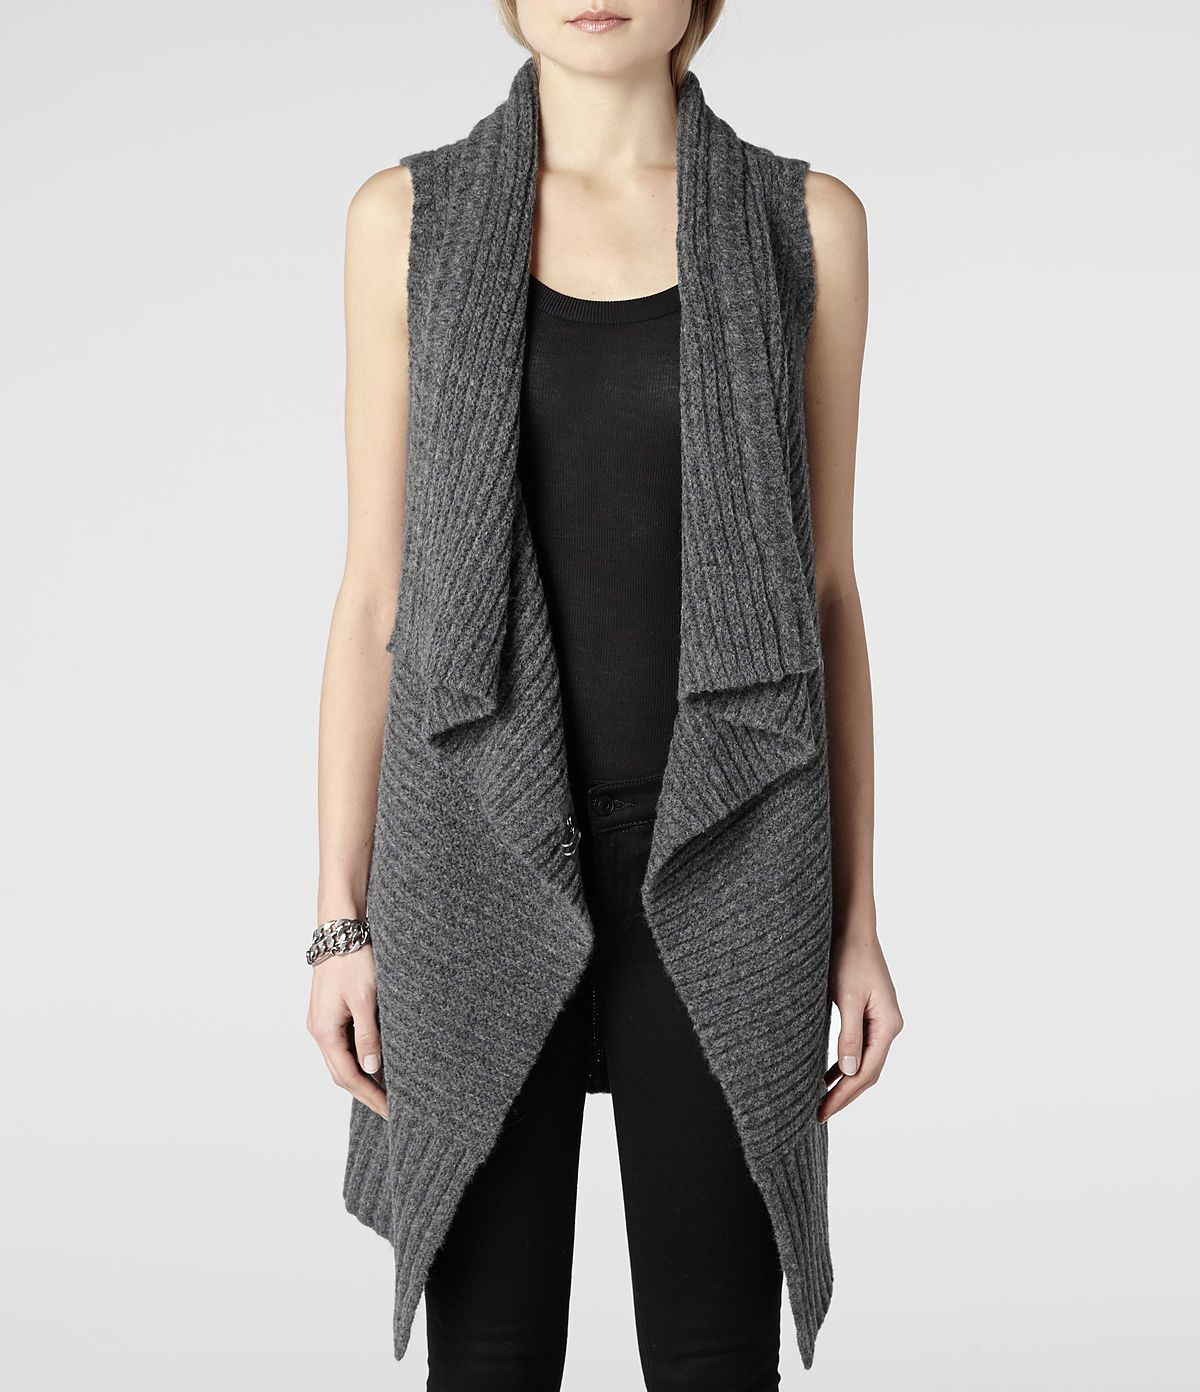 ALLSAINTS | Womens Sleeveless Force Cardigan | Fashion | Pinterest ...